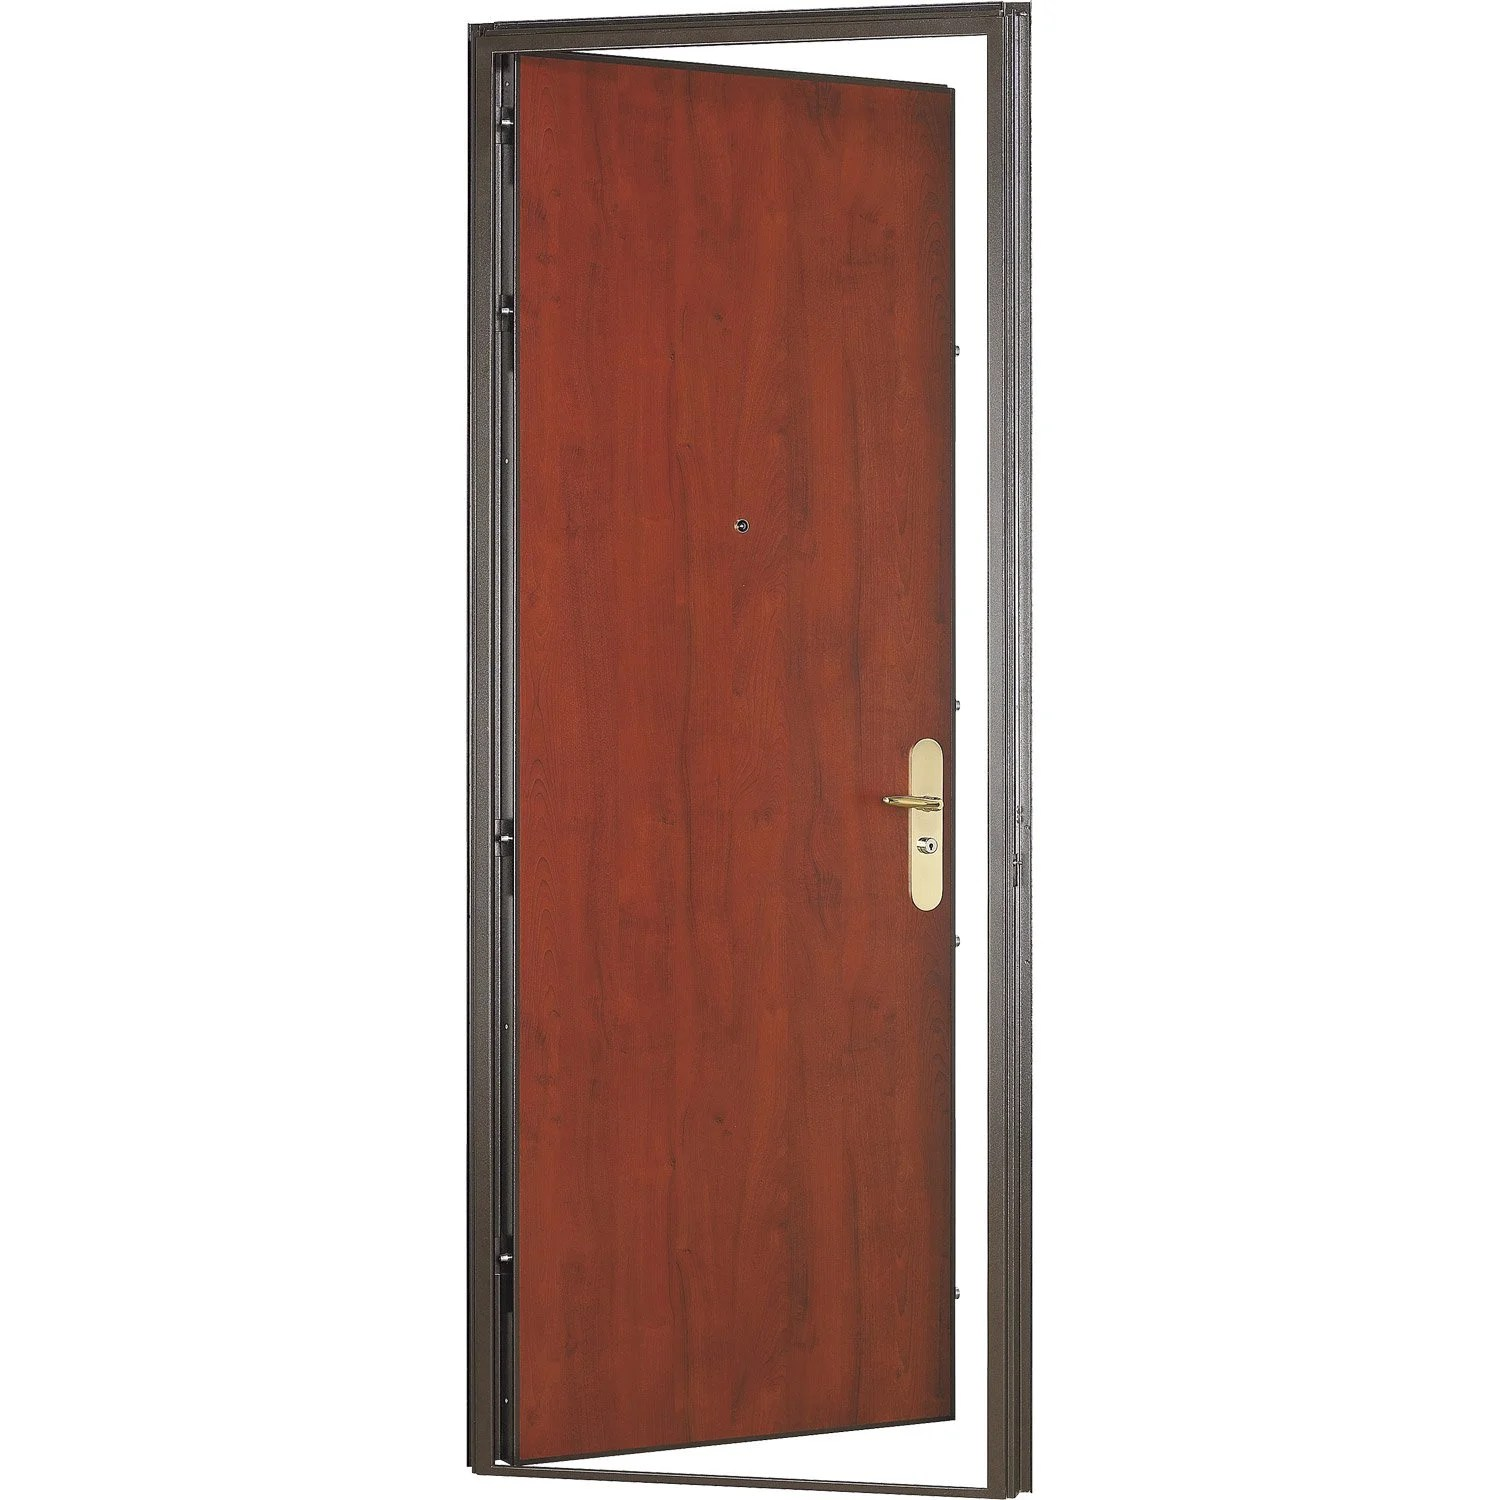 Porte Blindée Appartement Porte Blindée Sur Mesure Diamant 2 Leroy Merlin